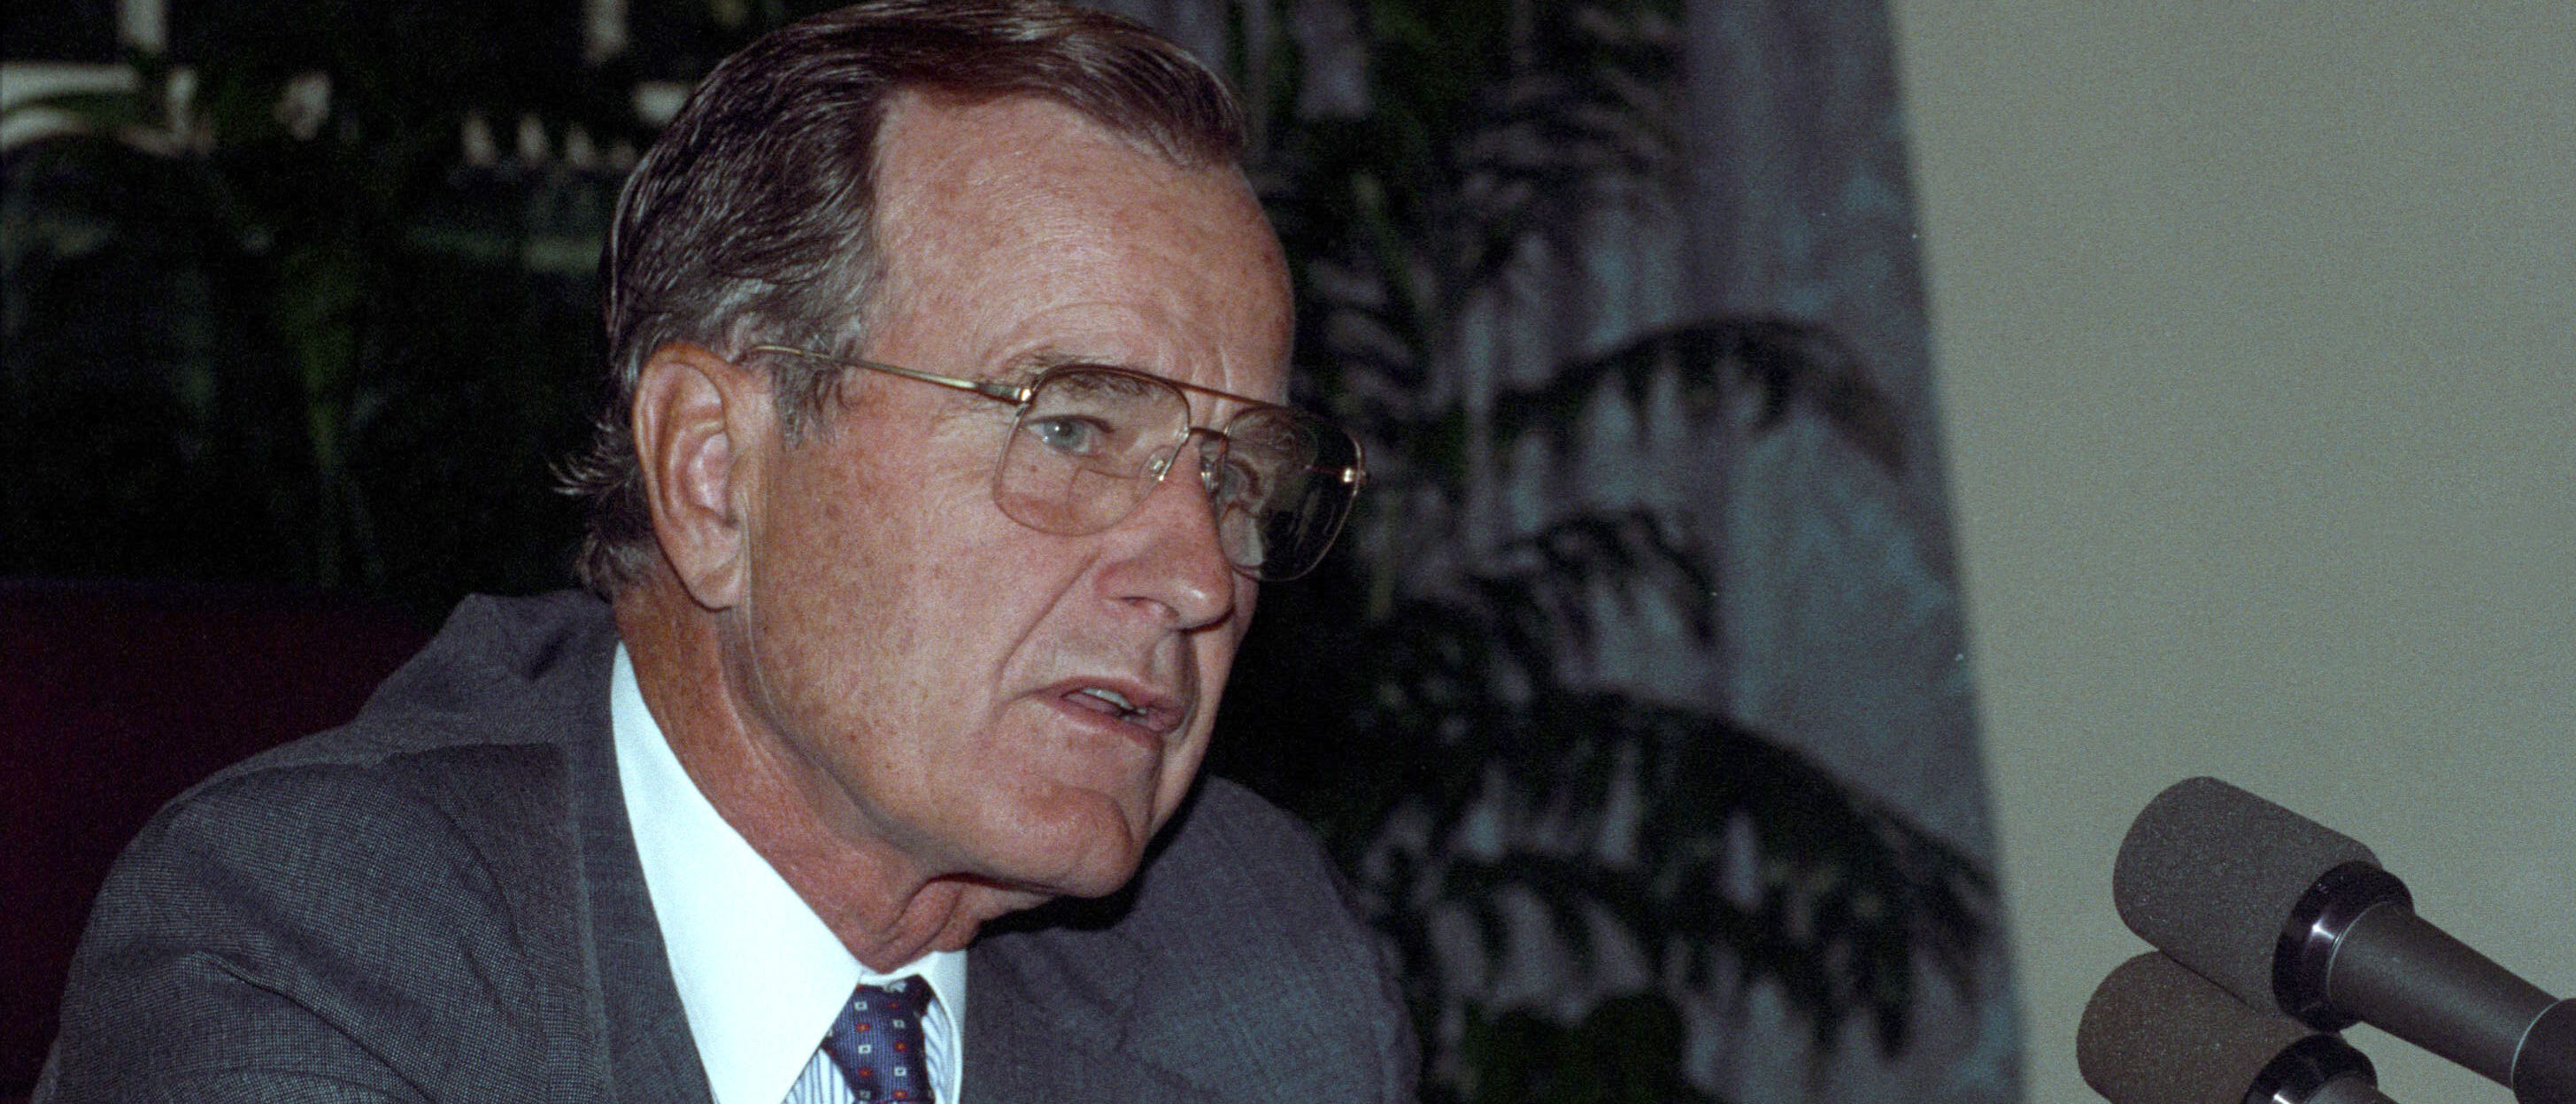 President George H.W. Bush at the White House after he addressed the tens of thousands of U.S. troops defending Saudi Arabia August 29, 1990. The Pentatgon says very few of the soldiers could hear the address because the military doesn't have a transmitter in Saudi Arabia. Reuters/Gary Cameron